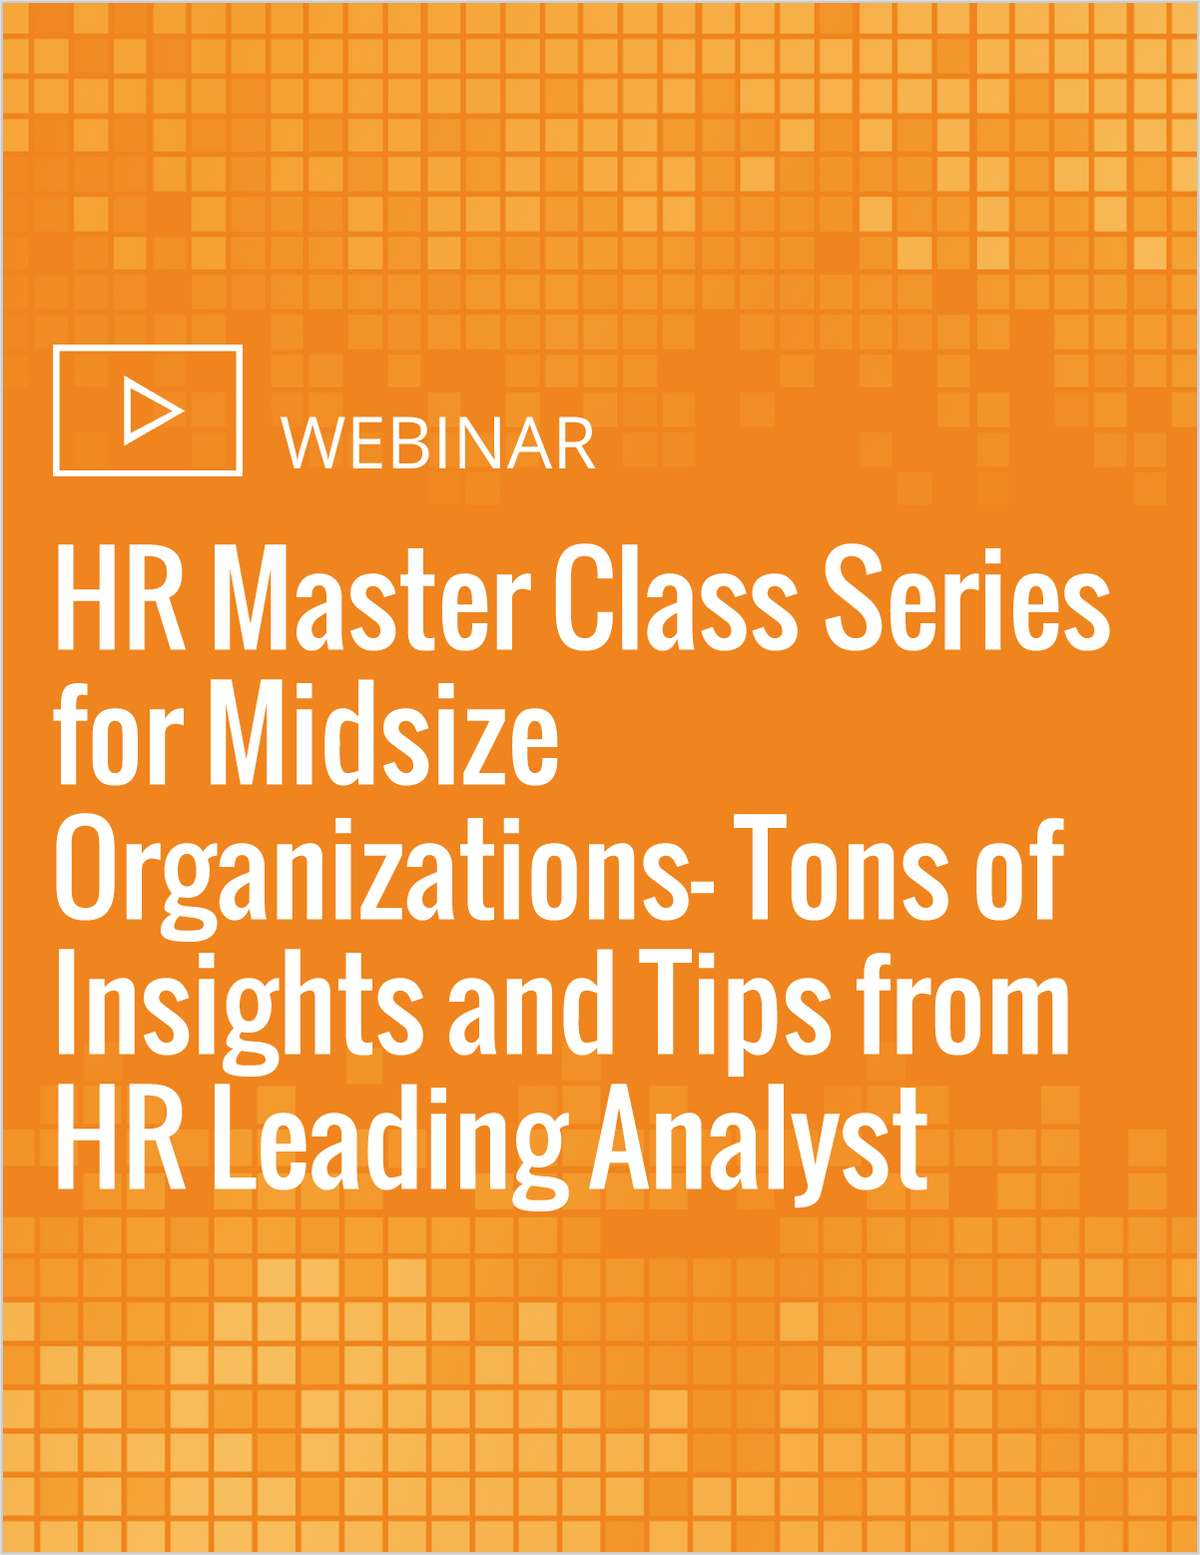 HR Master Class Series for Midsize Organizations- Tons of Insights and Tips from HR Leading Analyst